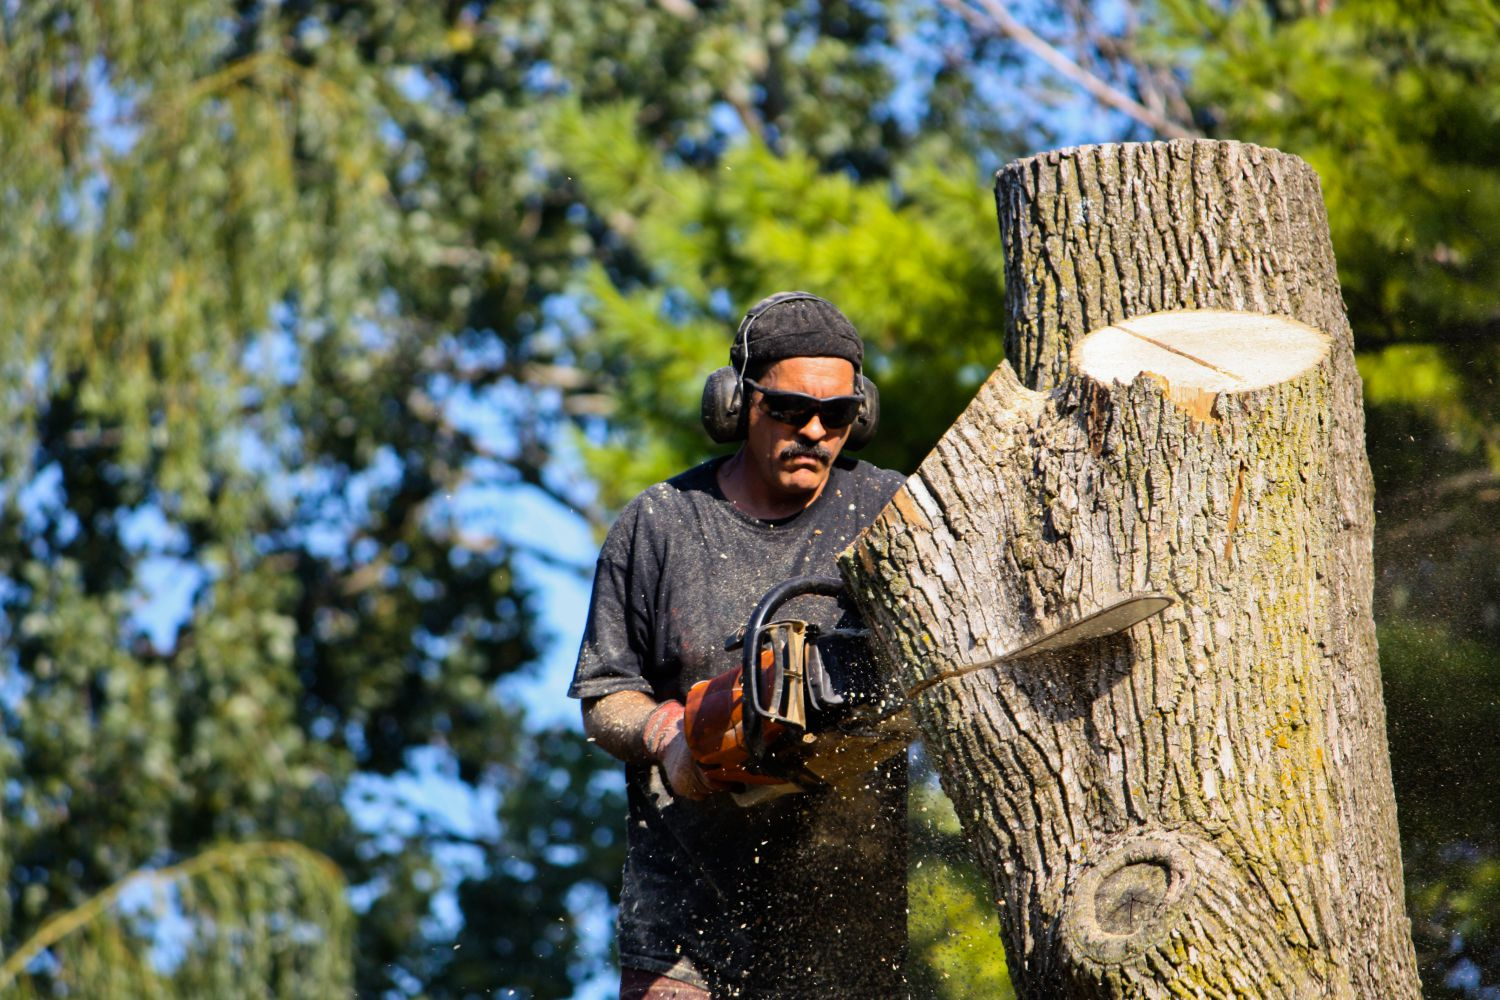 Sawing tree during local tree service in Cincinnati, OH